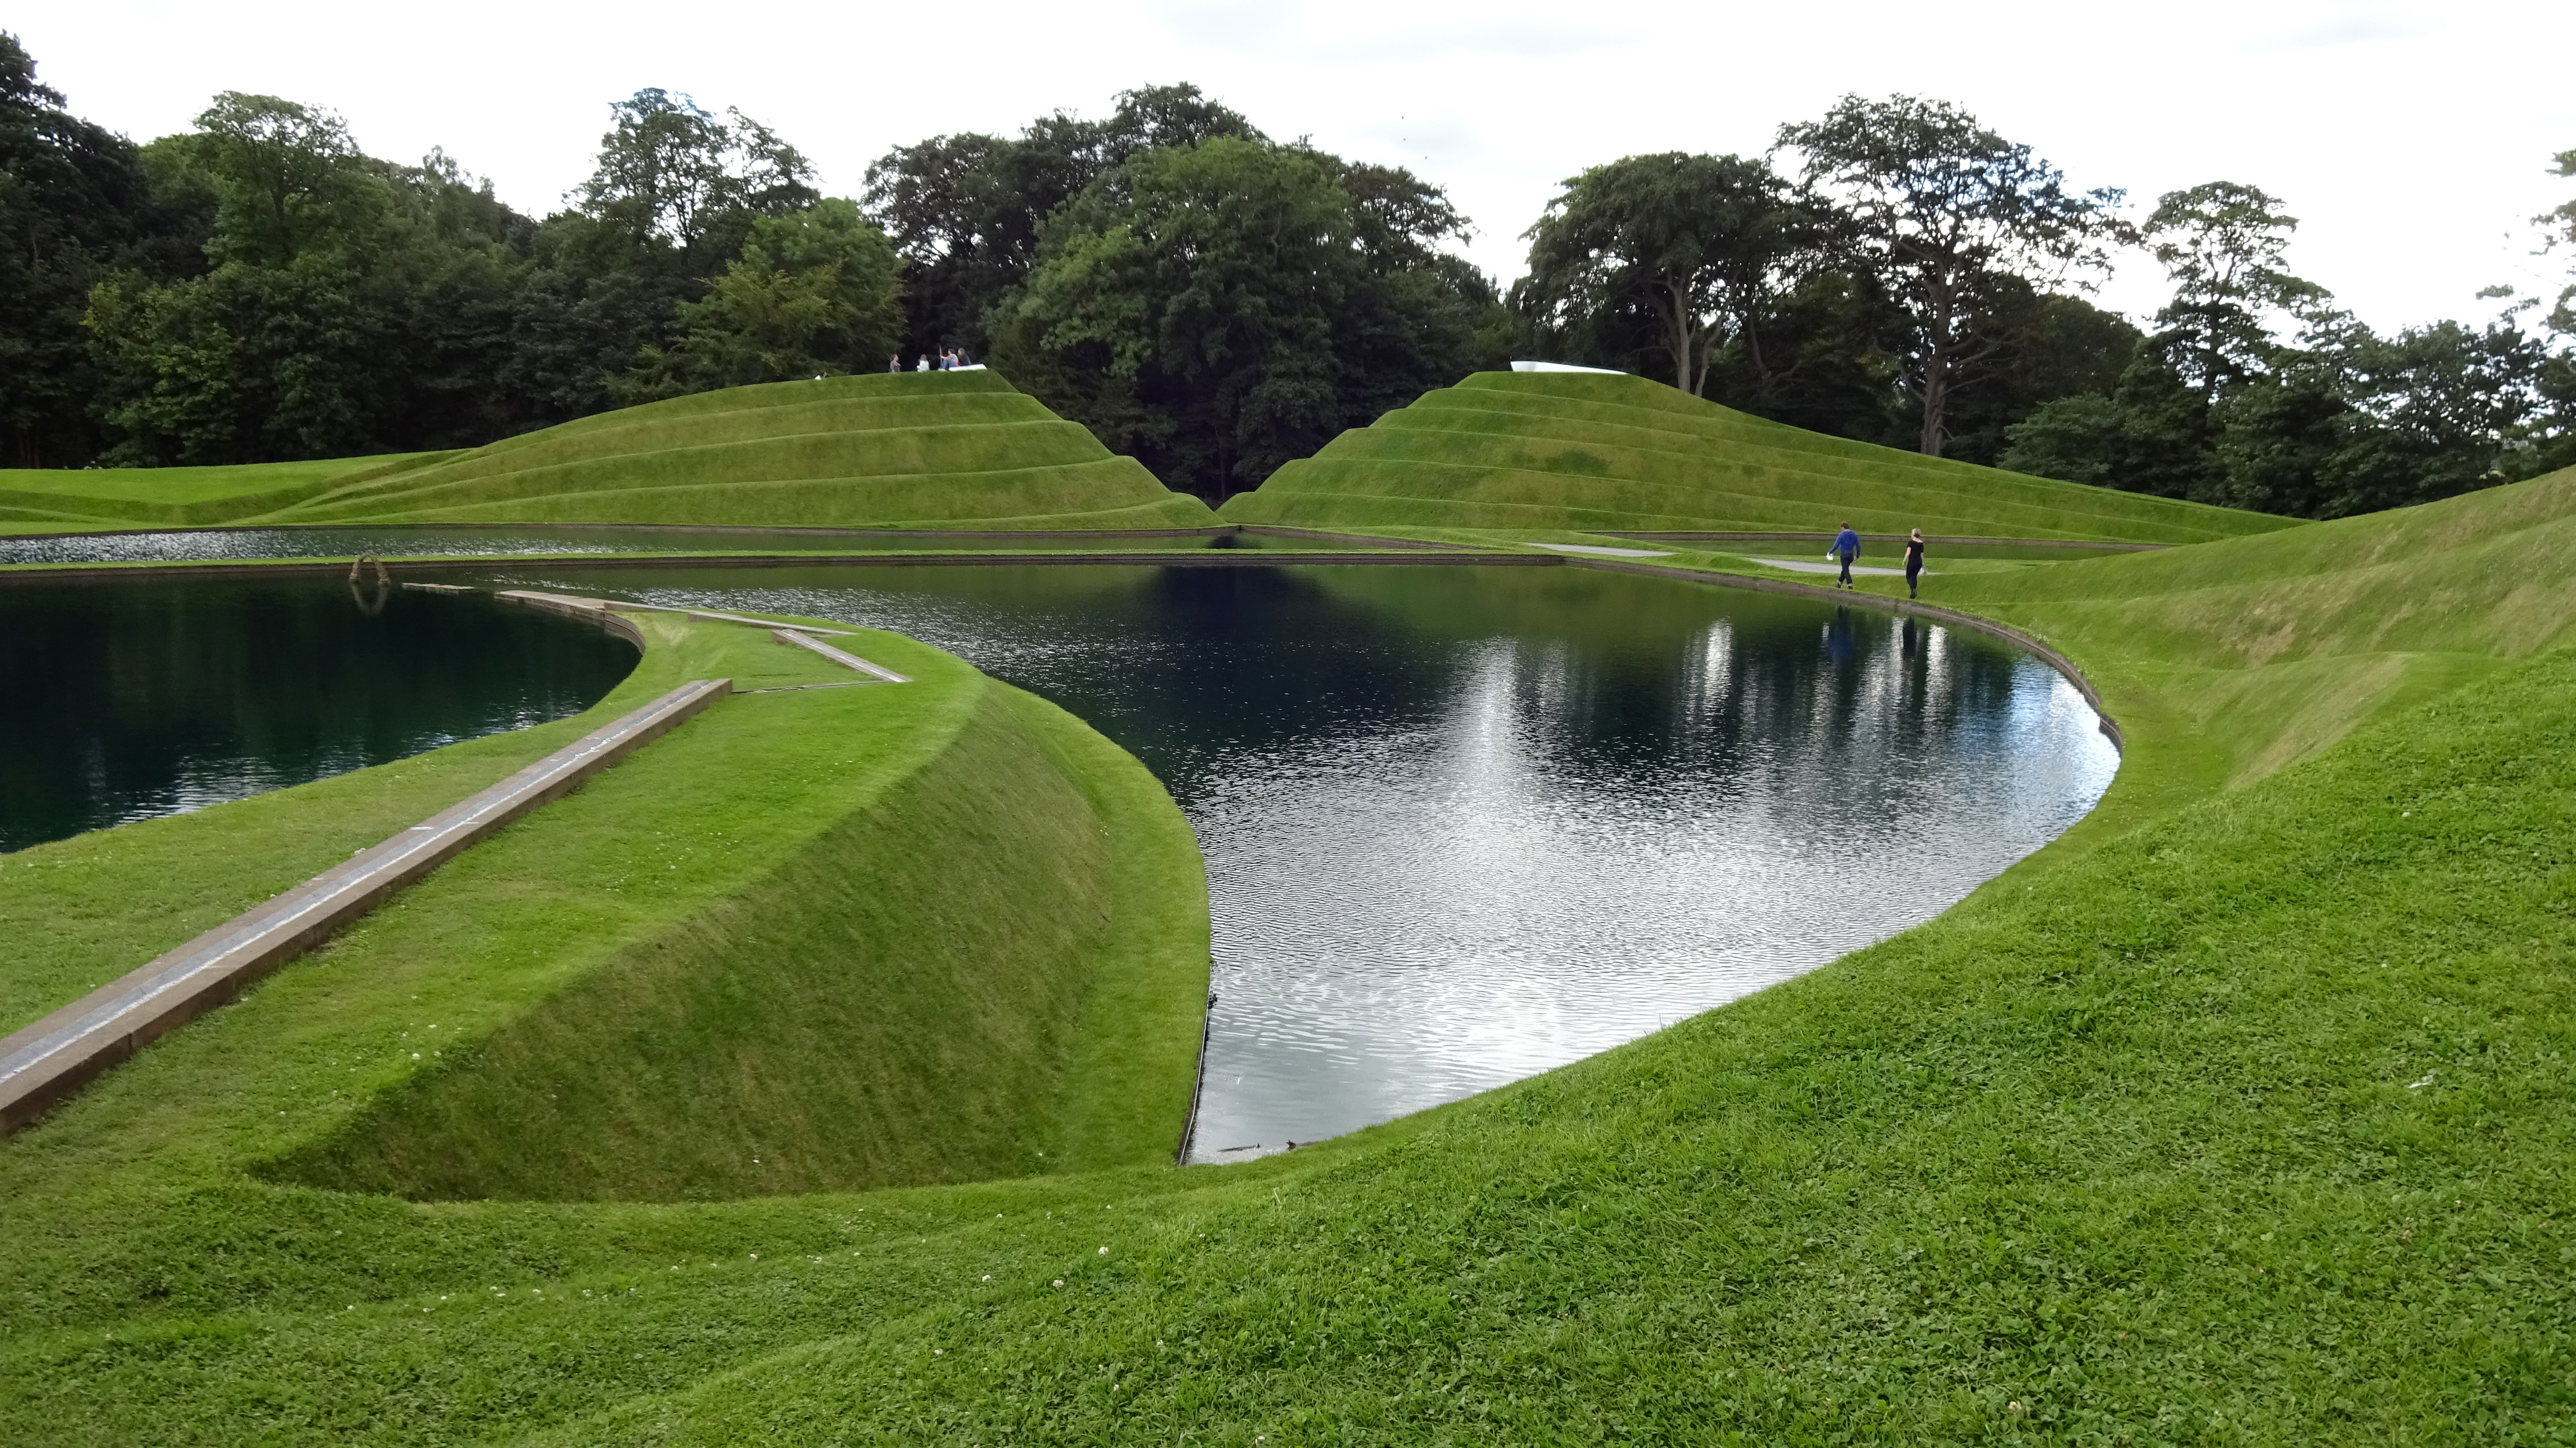 Charles Jencks' Life Mounds is a feature at Jupiter Artland.